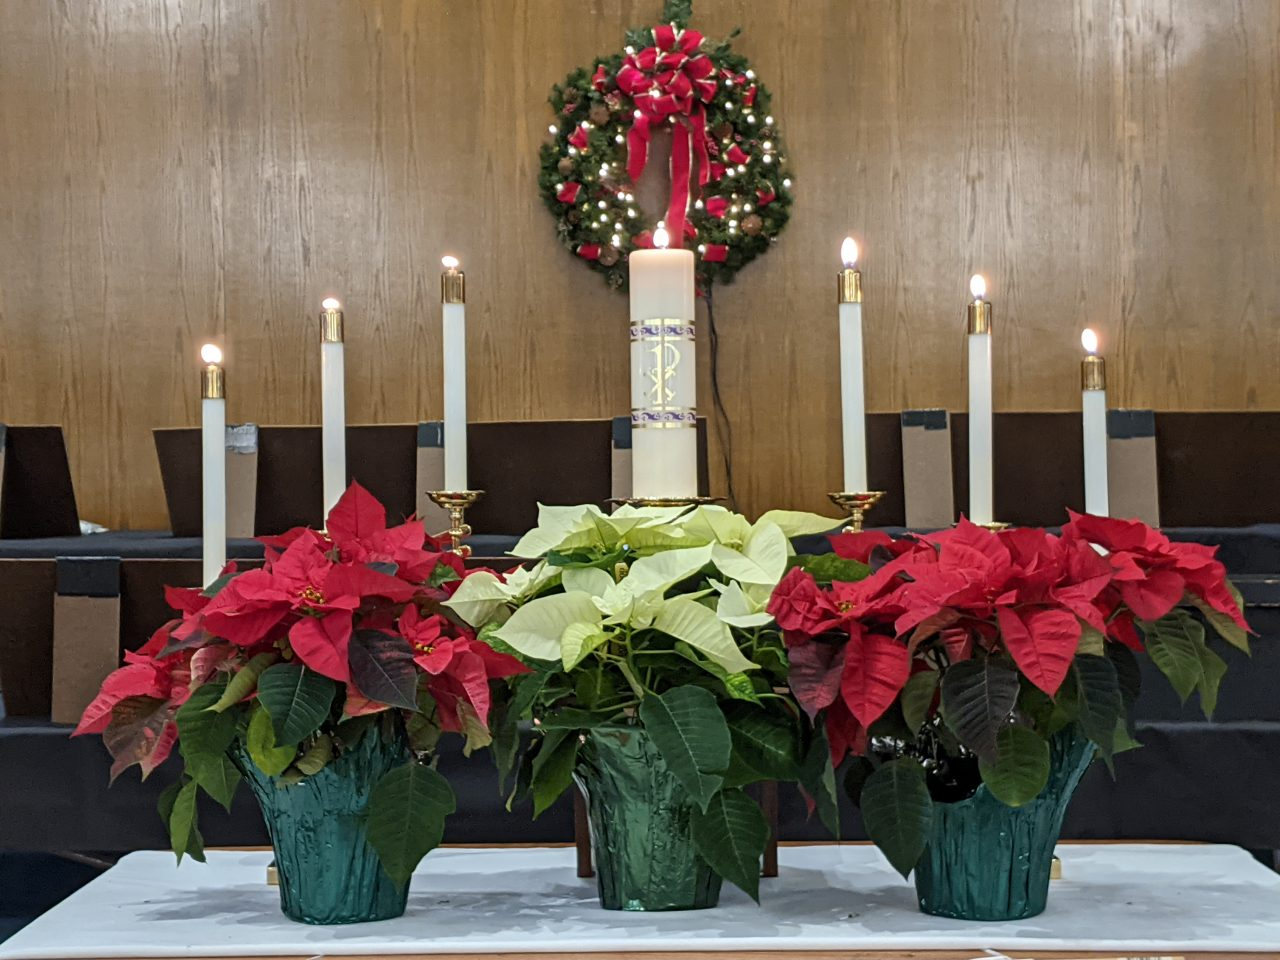 More Poinsettias on the Altar